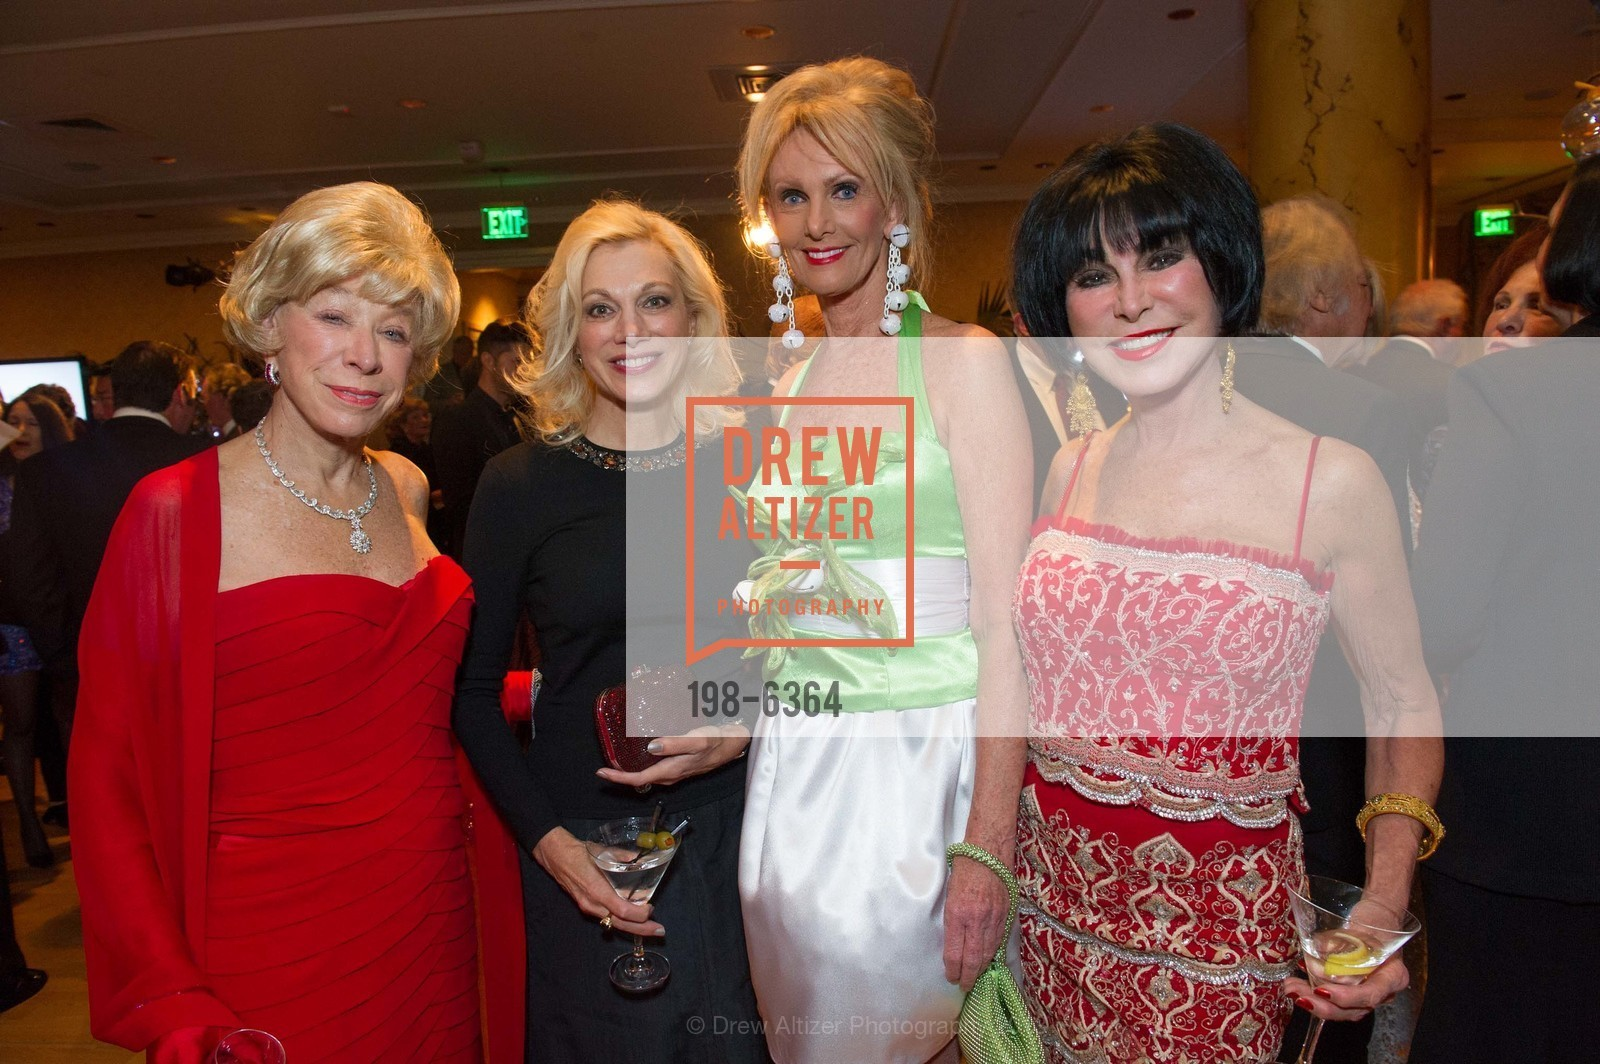 Maria Pitcairn, Belinda Berry, Cynthia Schreuder, Marilyn Cabak, 25th Anniversary Holiday HOB NOB ON THE HILL, US, December 6th, 2013,Drew Altizer, Drew Altizer Photography, full-service agency, private events, San Francisco photographer, photographer california